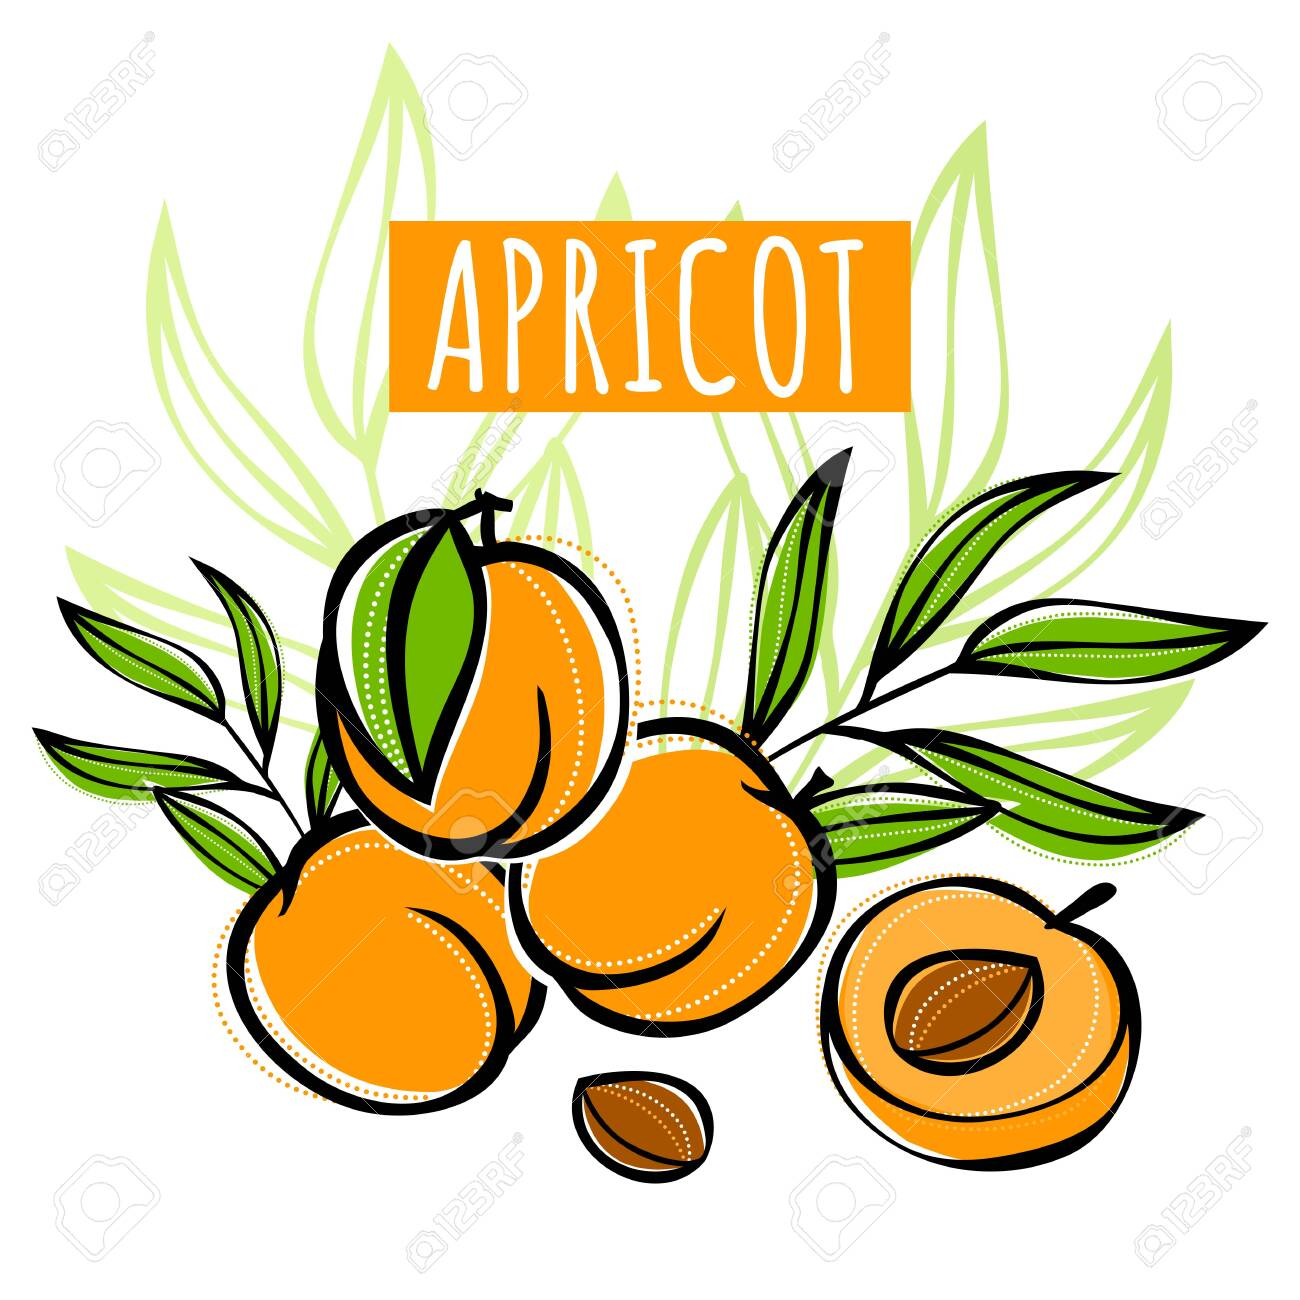 Vector sketch apricot fruit decorated with leaves. Hand drawn vector illustration for labels, restaurant menu, market label or package or another design. - 145344422